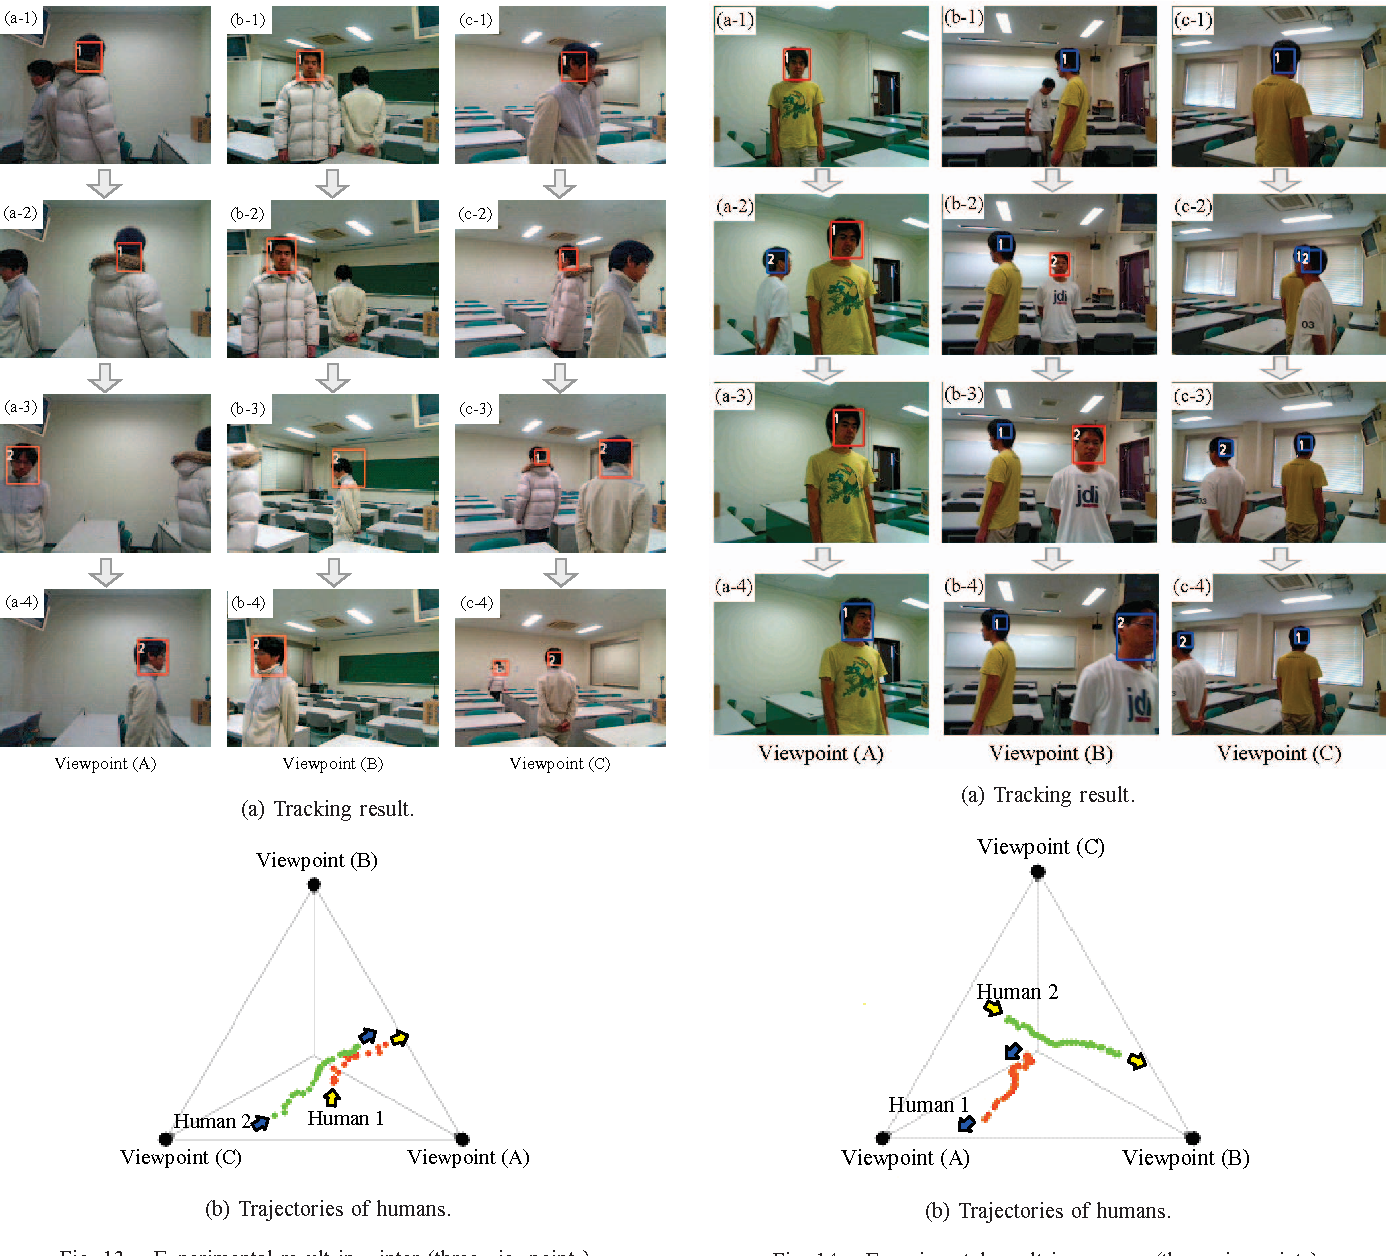 Human tracking with multiple cameras based on face detection